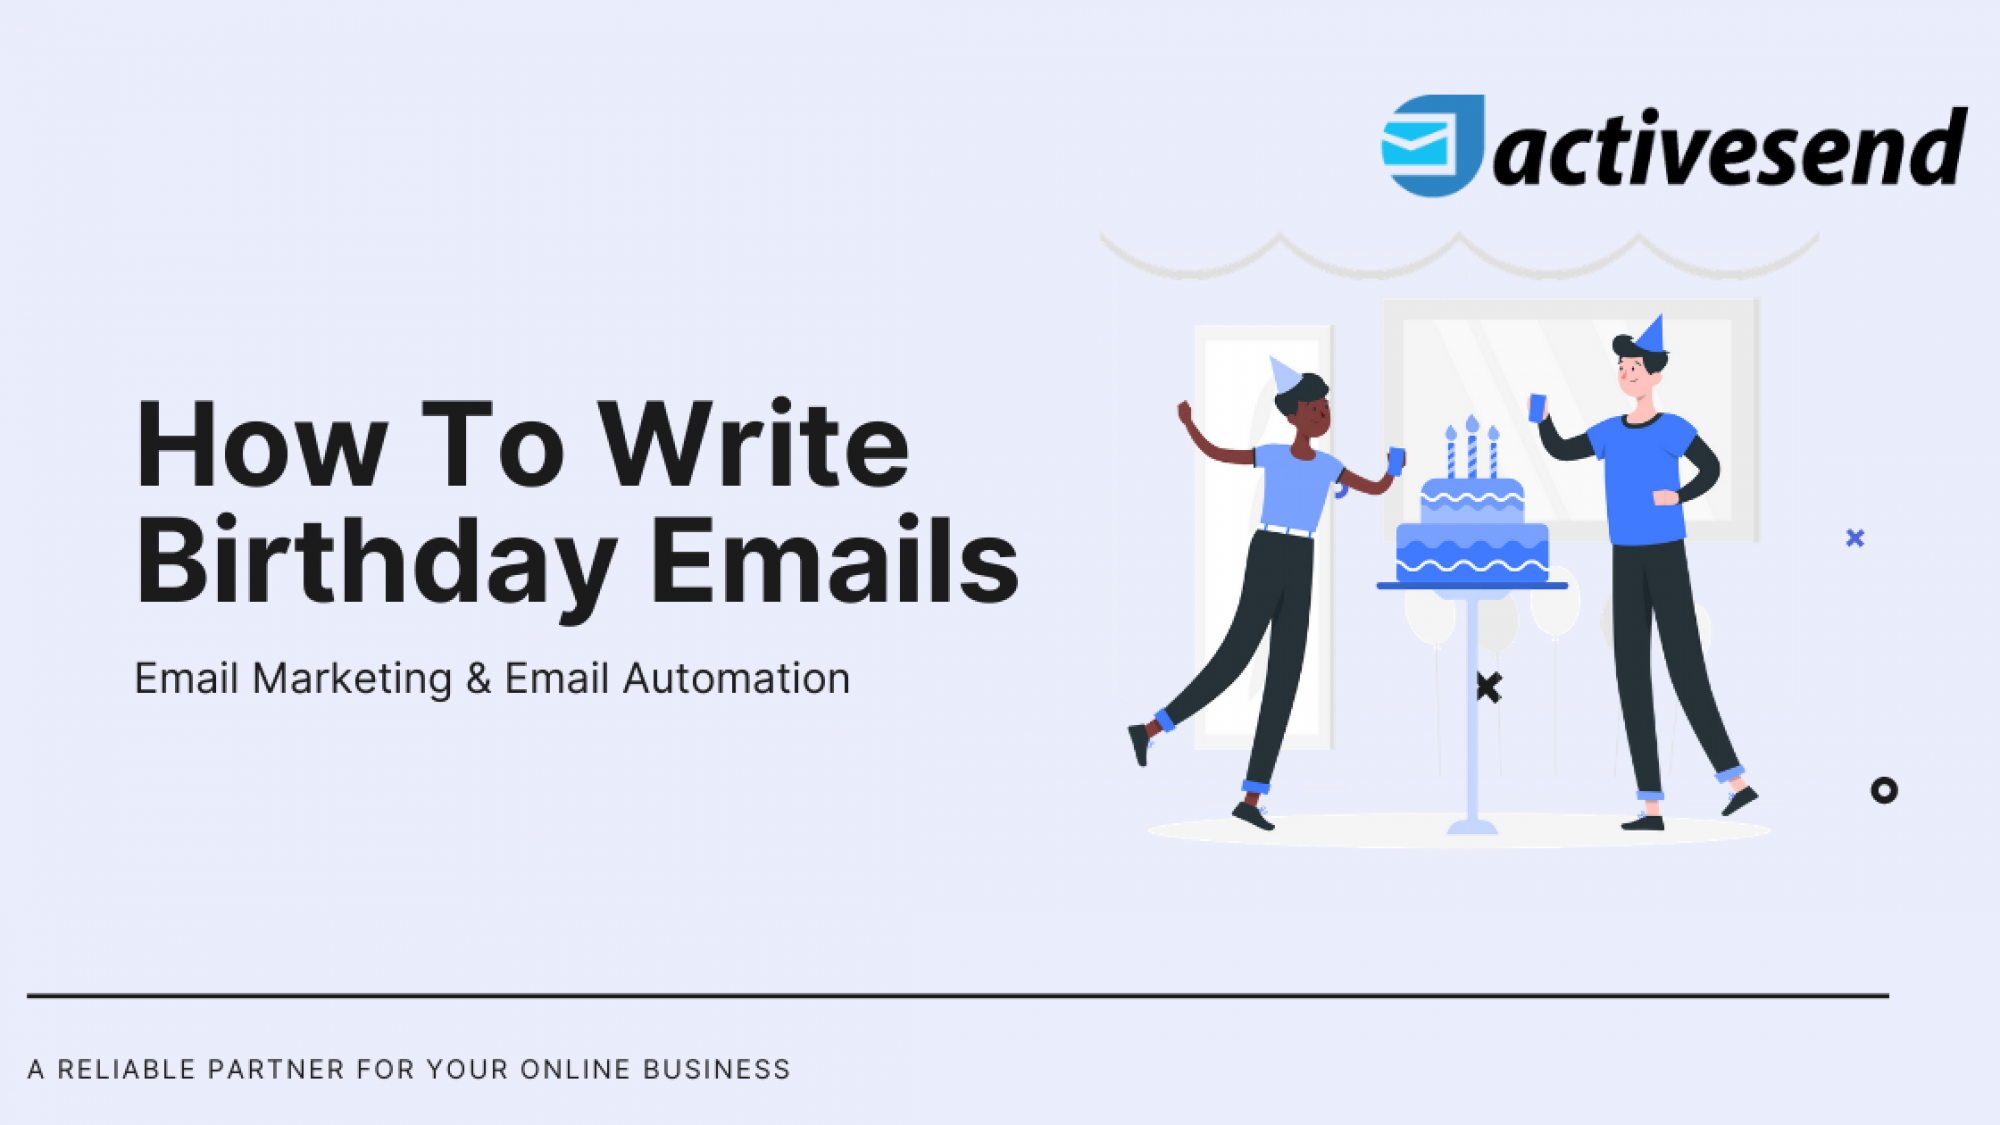 How To Write Birthday Emails